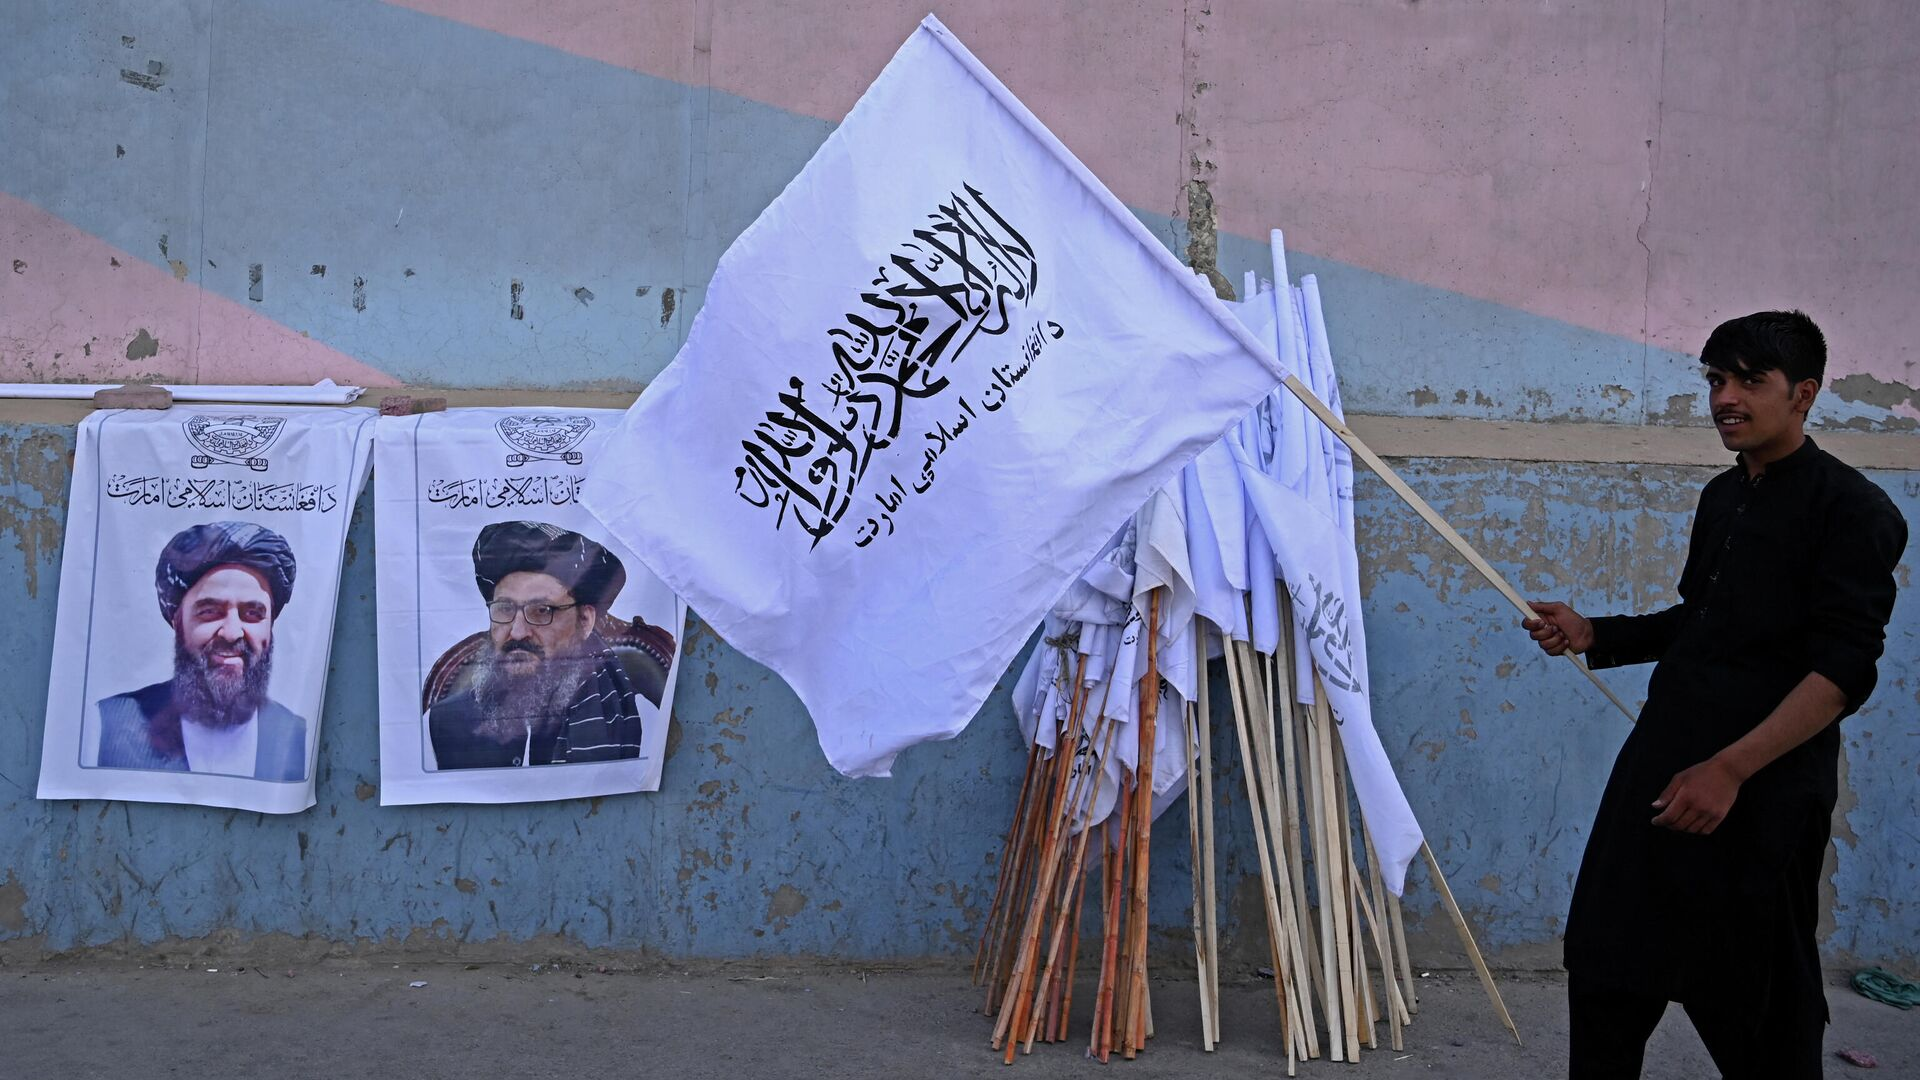 A vendor holds a Taliban flag next to the posters of Taliban leaders Mullah Abdul Ghani Baradar and Amir Khan Muttaqi (L) as he waits for customers along a street in Kabul on August 27, 2021, following the Taliban's military takeover of Afghanistan - Sputnik International, 1920, 15.09.2021